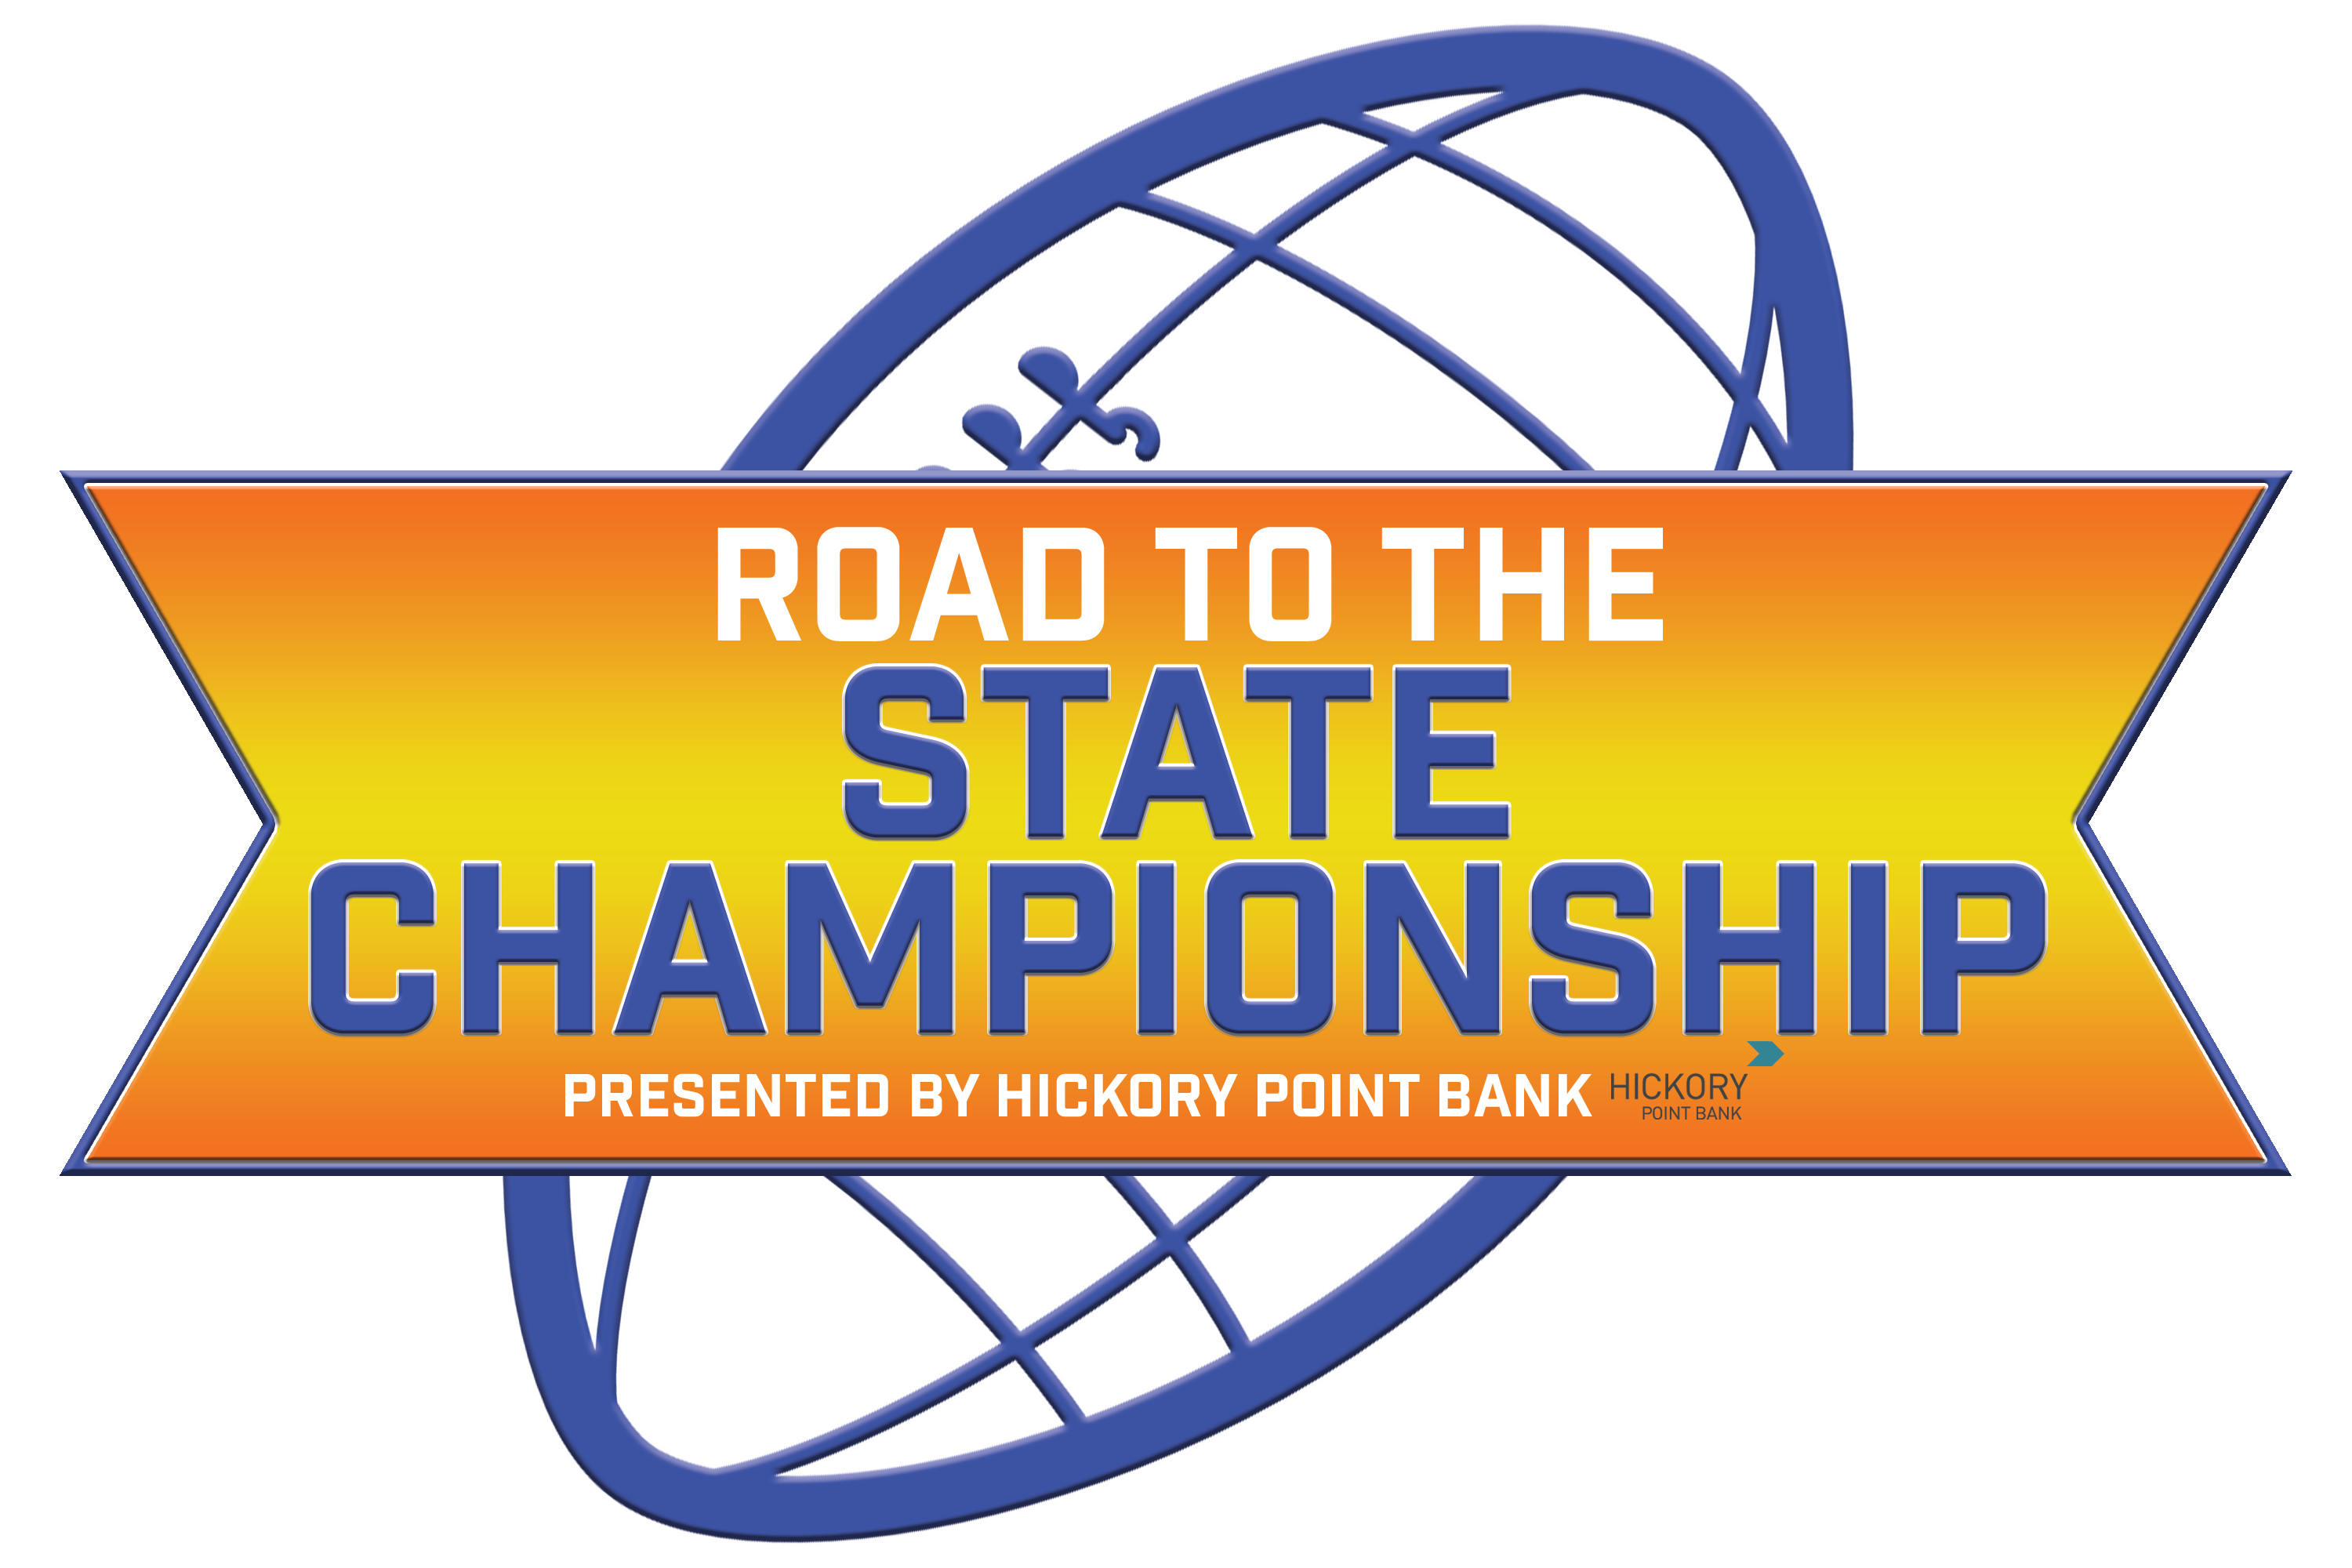 Road to the State Championship – Presented by Hickory Point Bank